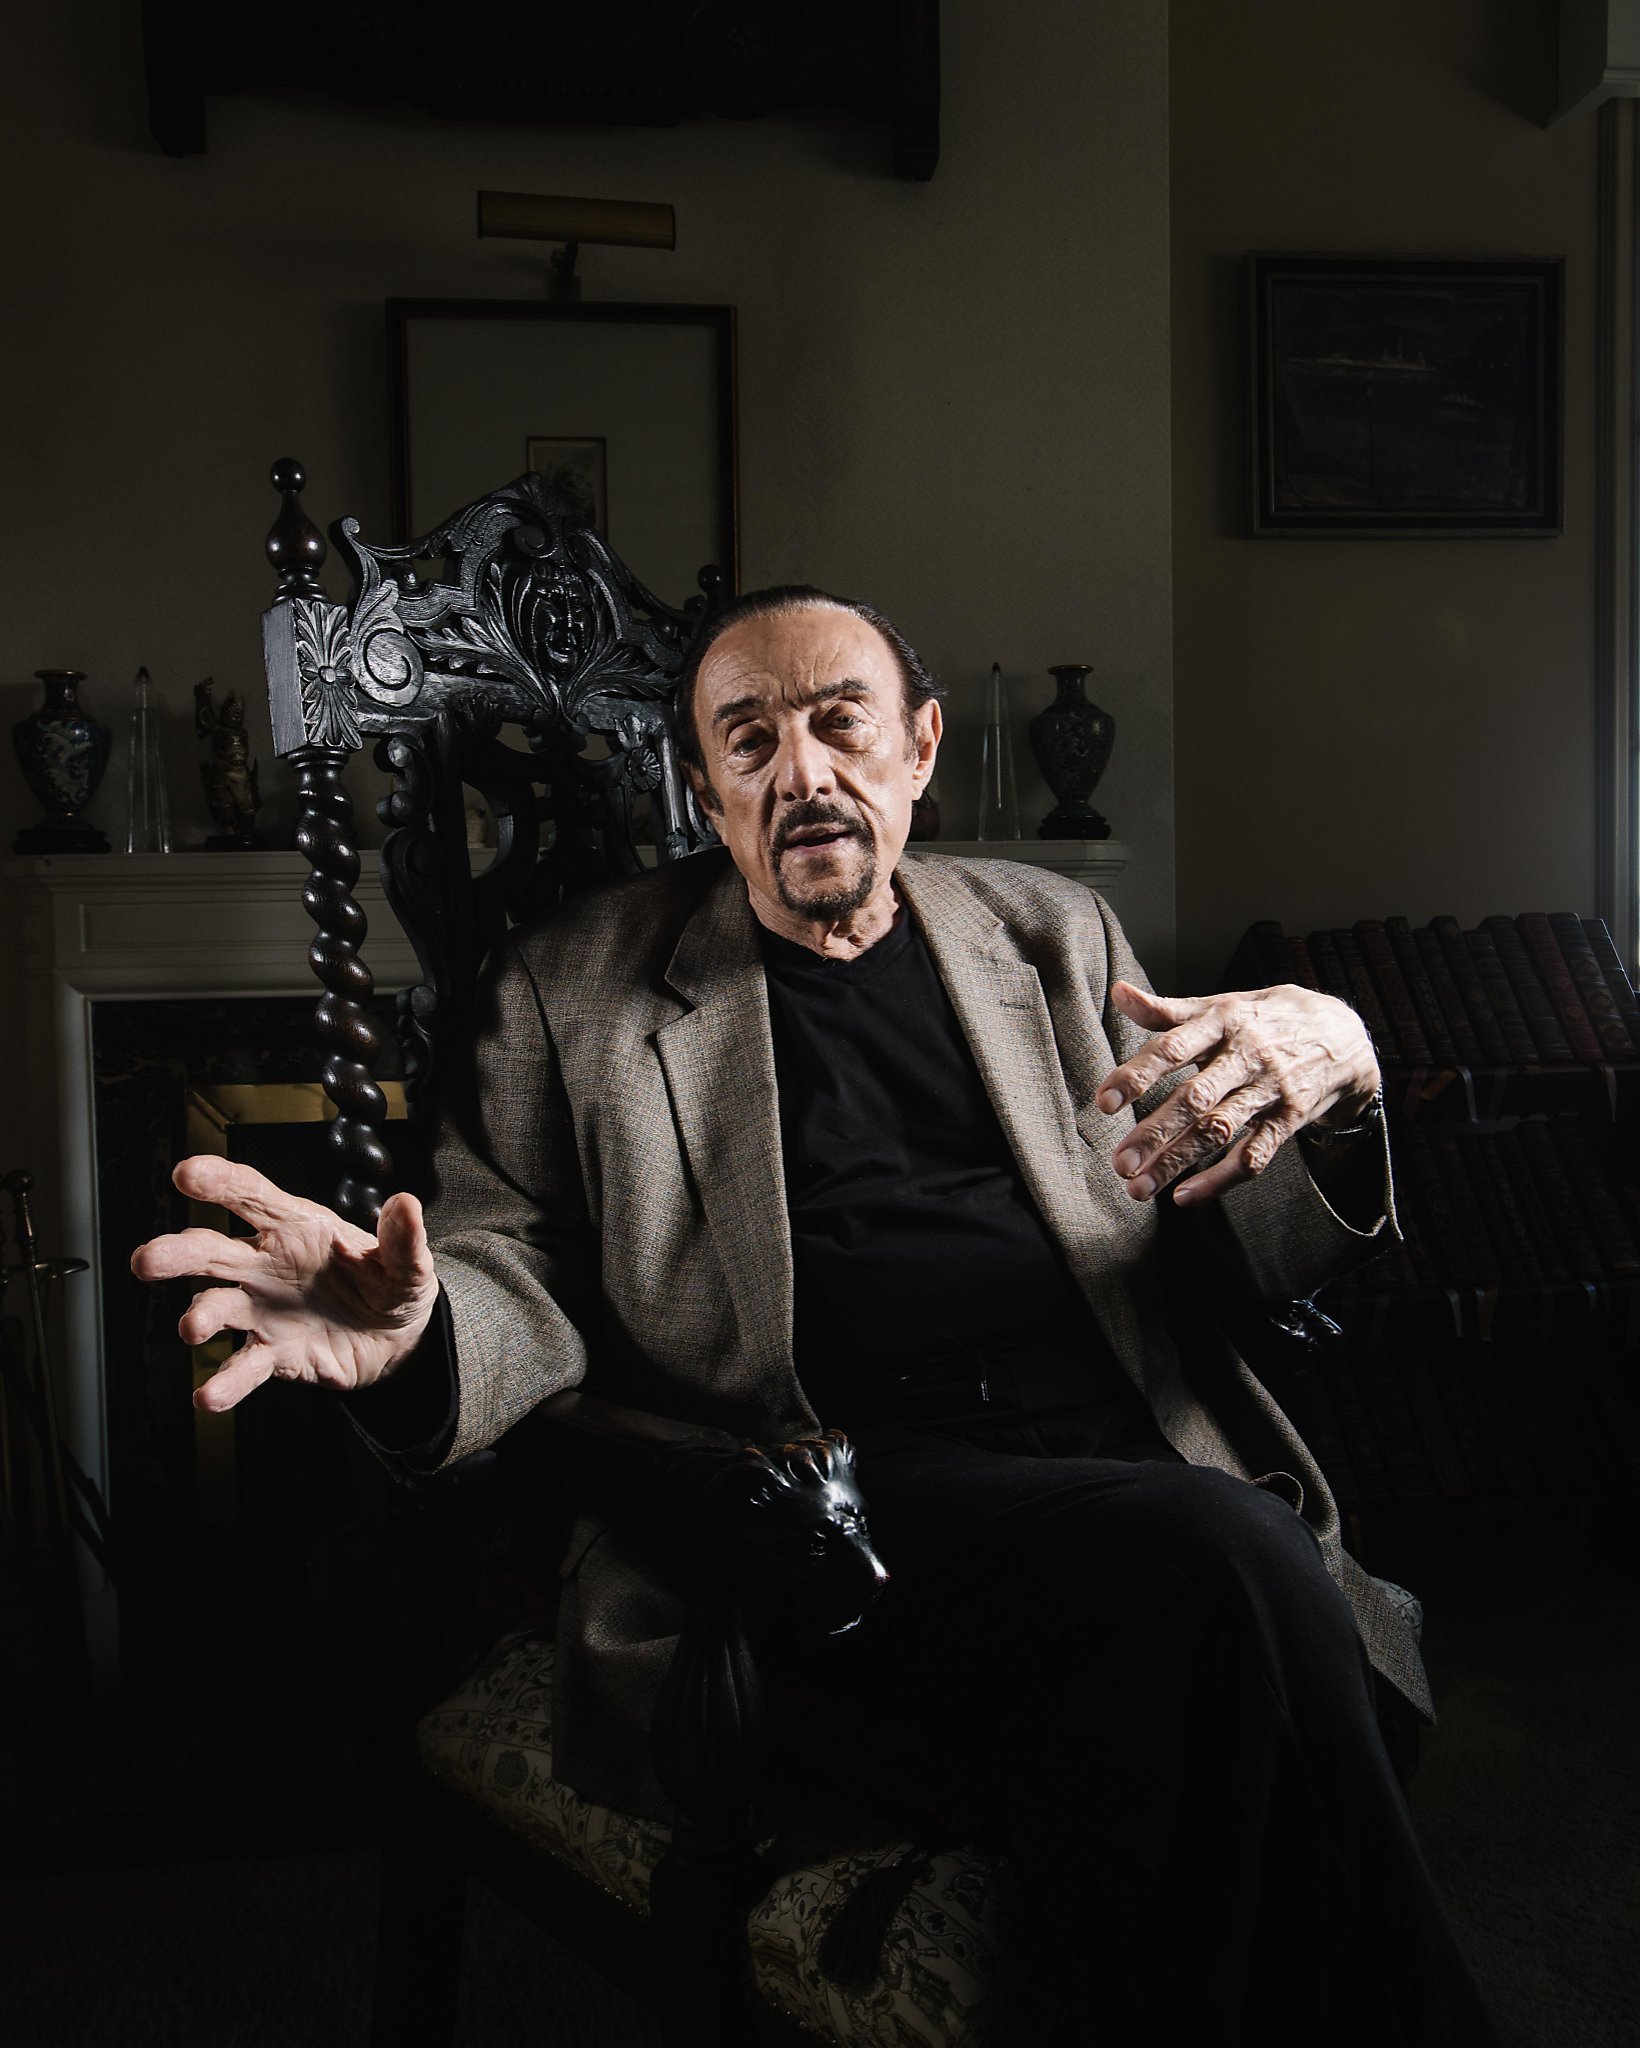 dr evil chair gander mountain folding chairs from to hero maker philip zimbardo sfchronicle com